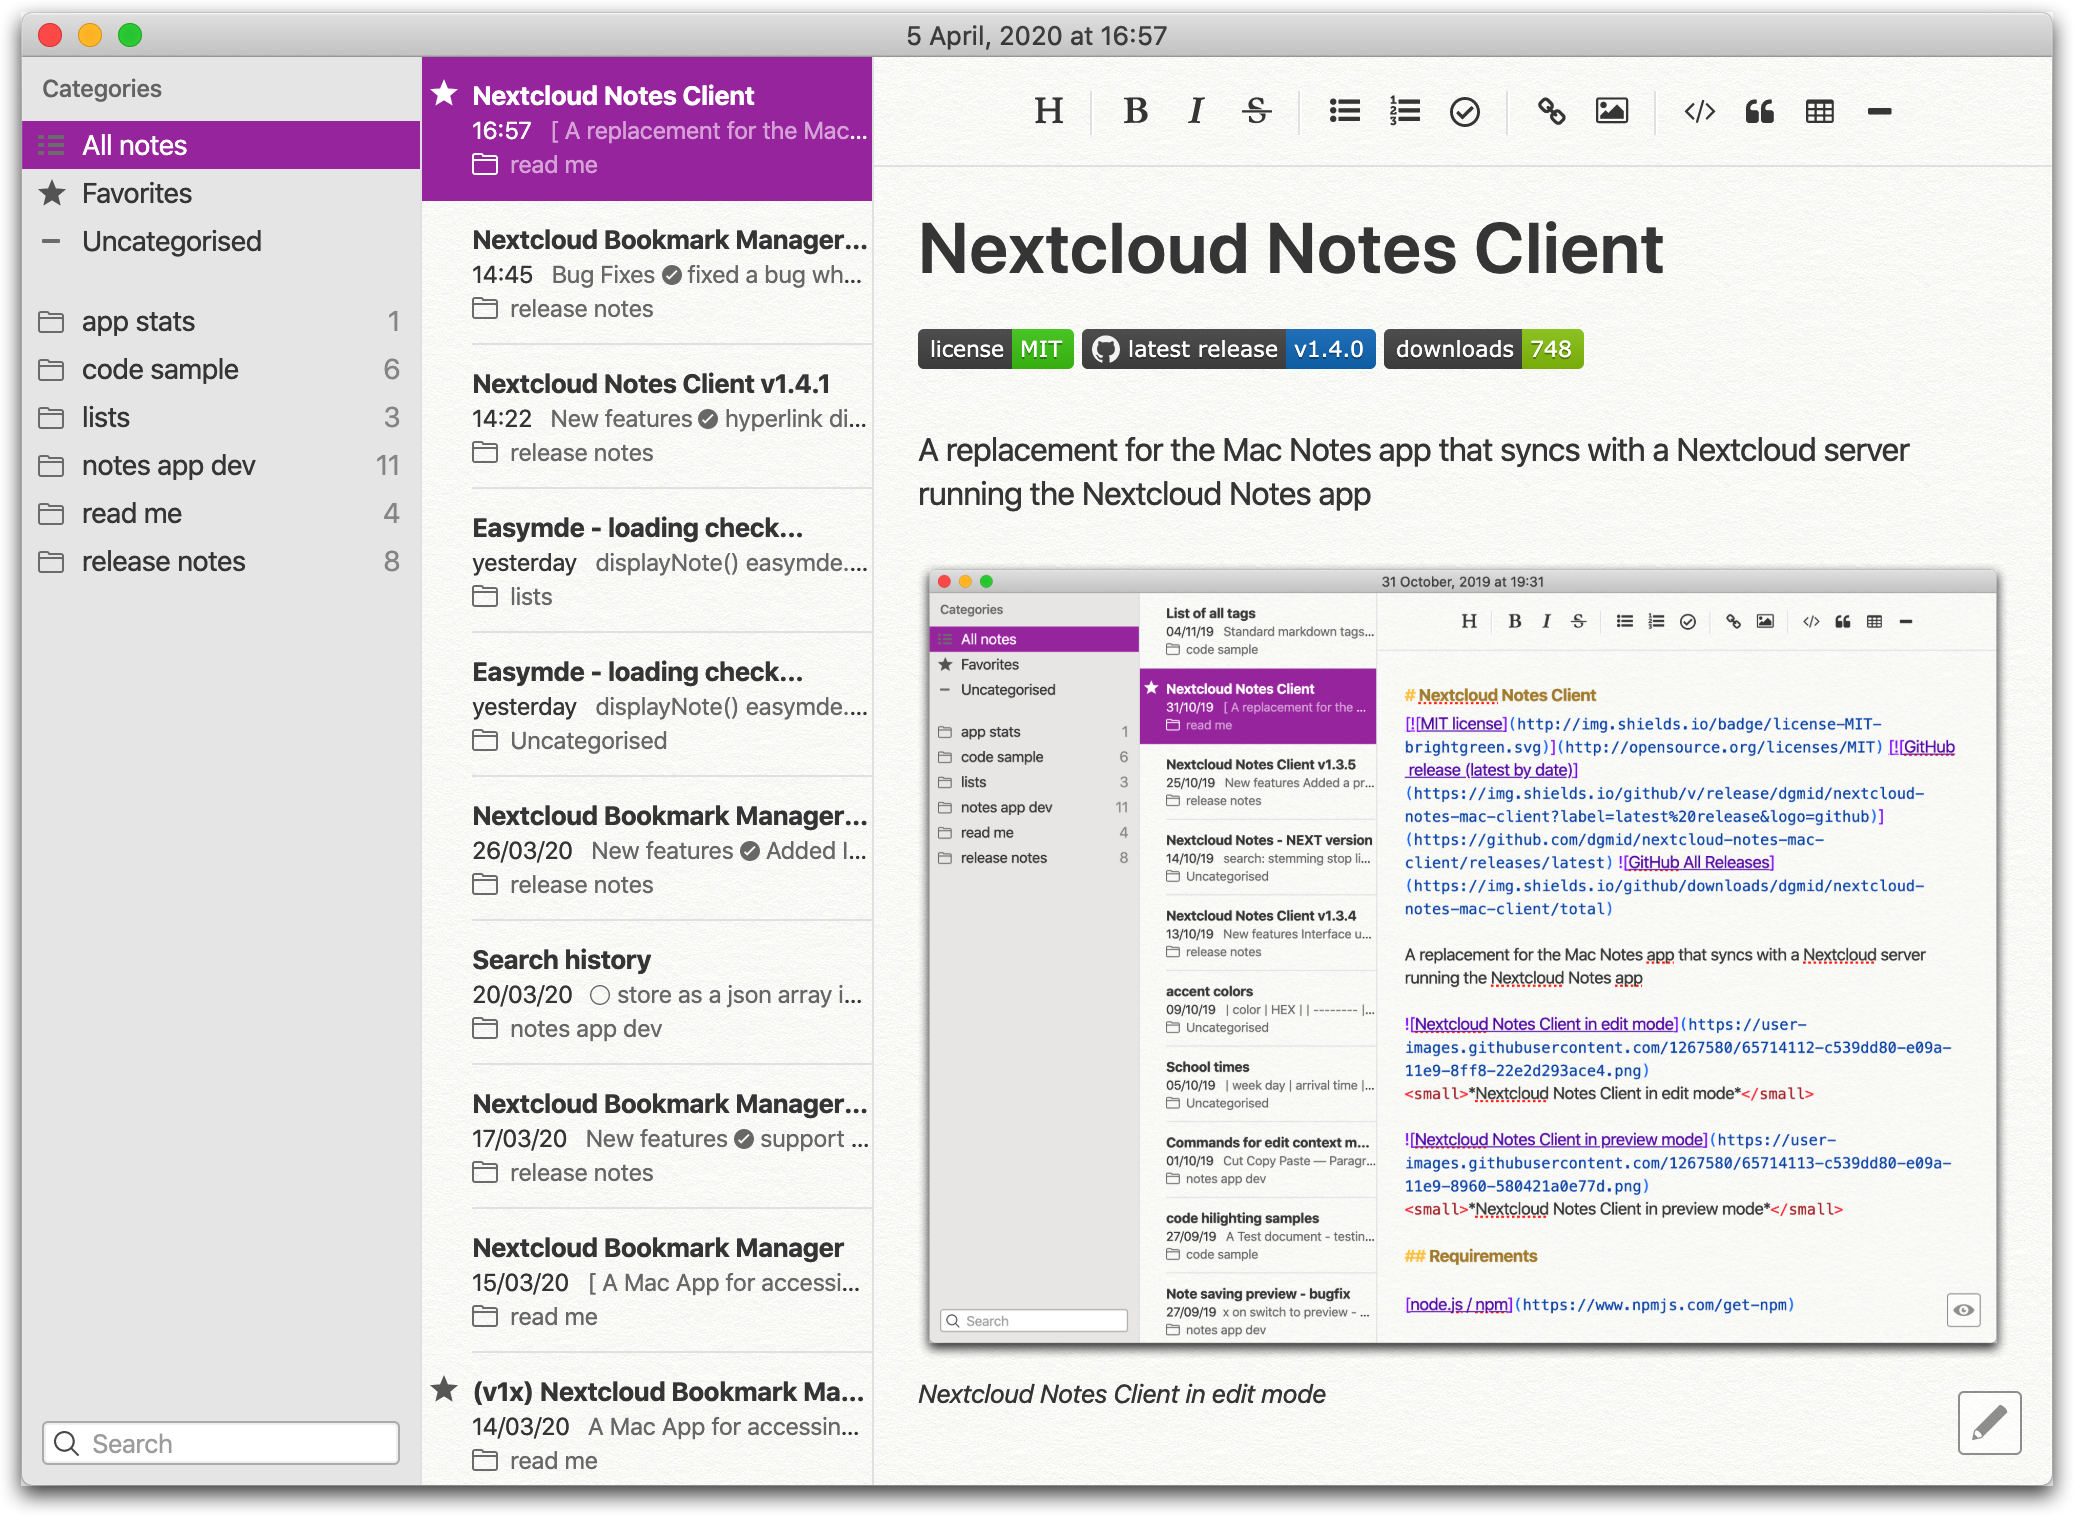 Nextcloud Notes Client in preview mode